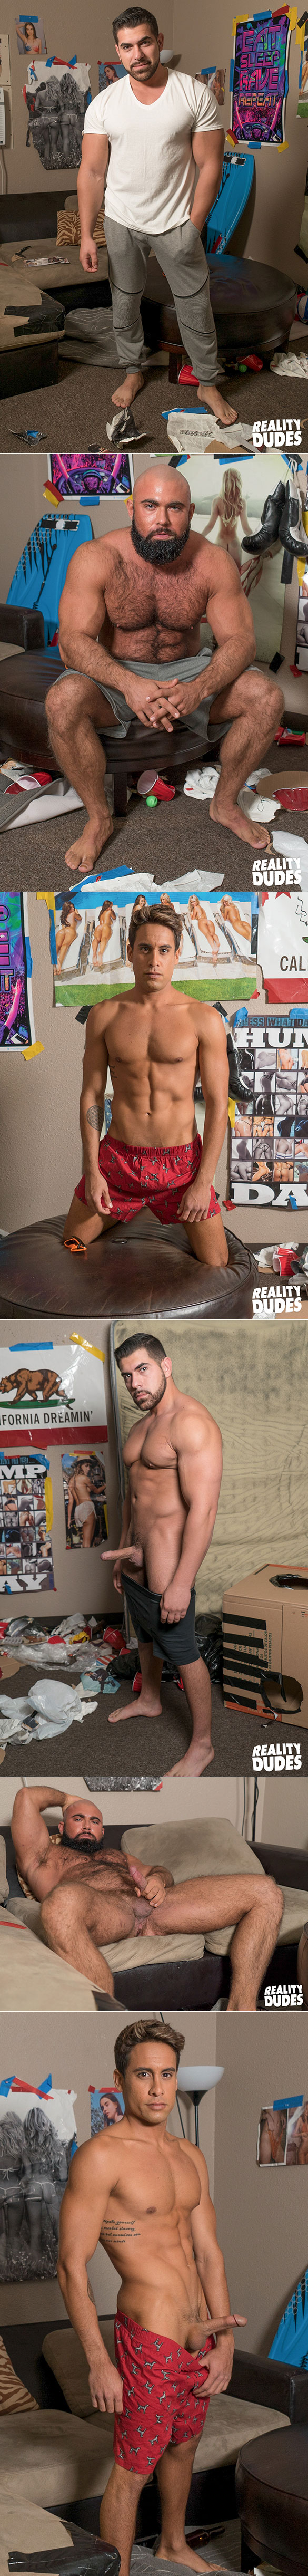 """Reality Dudes: Steven Roman and Damien Stone tag team Titus bareback in """"Playing Games"""""""